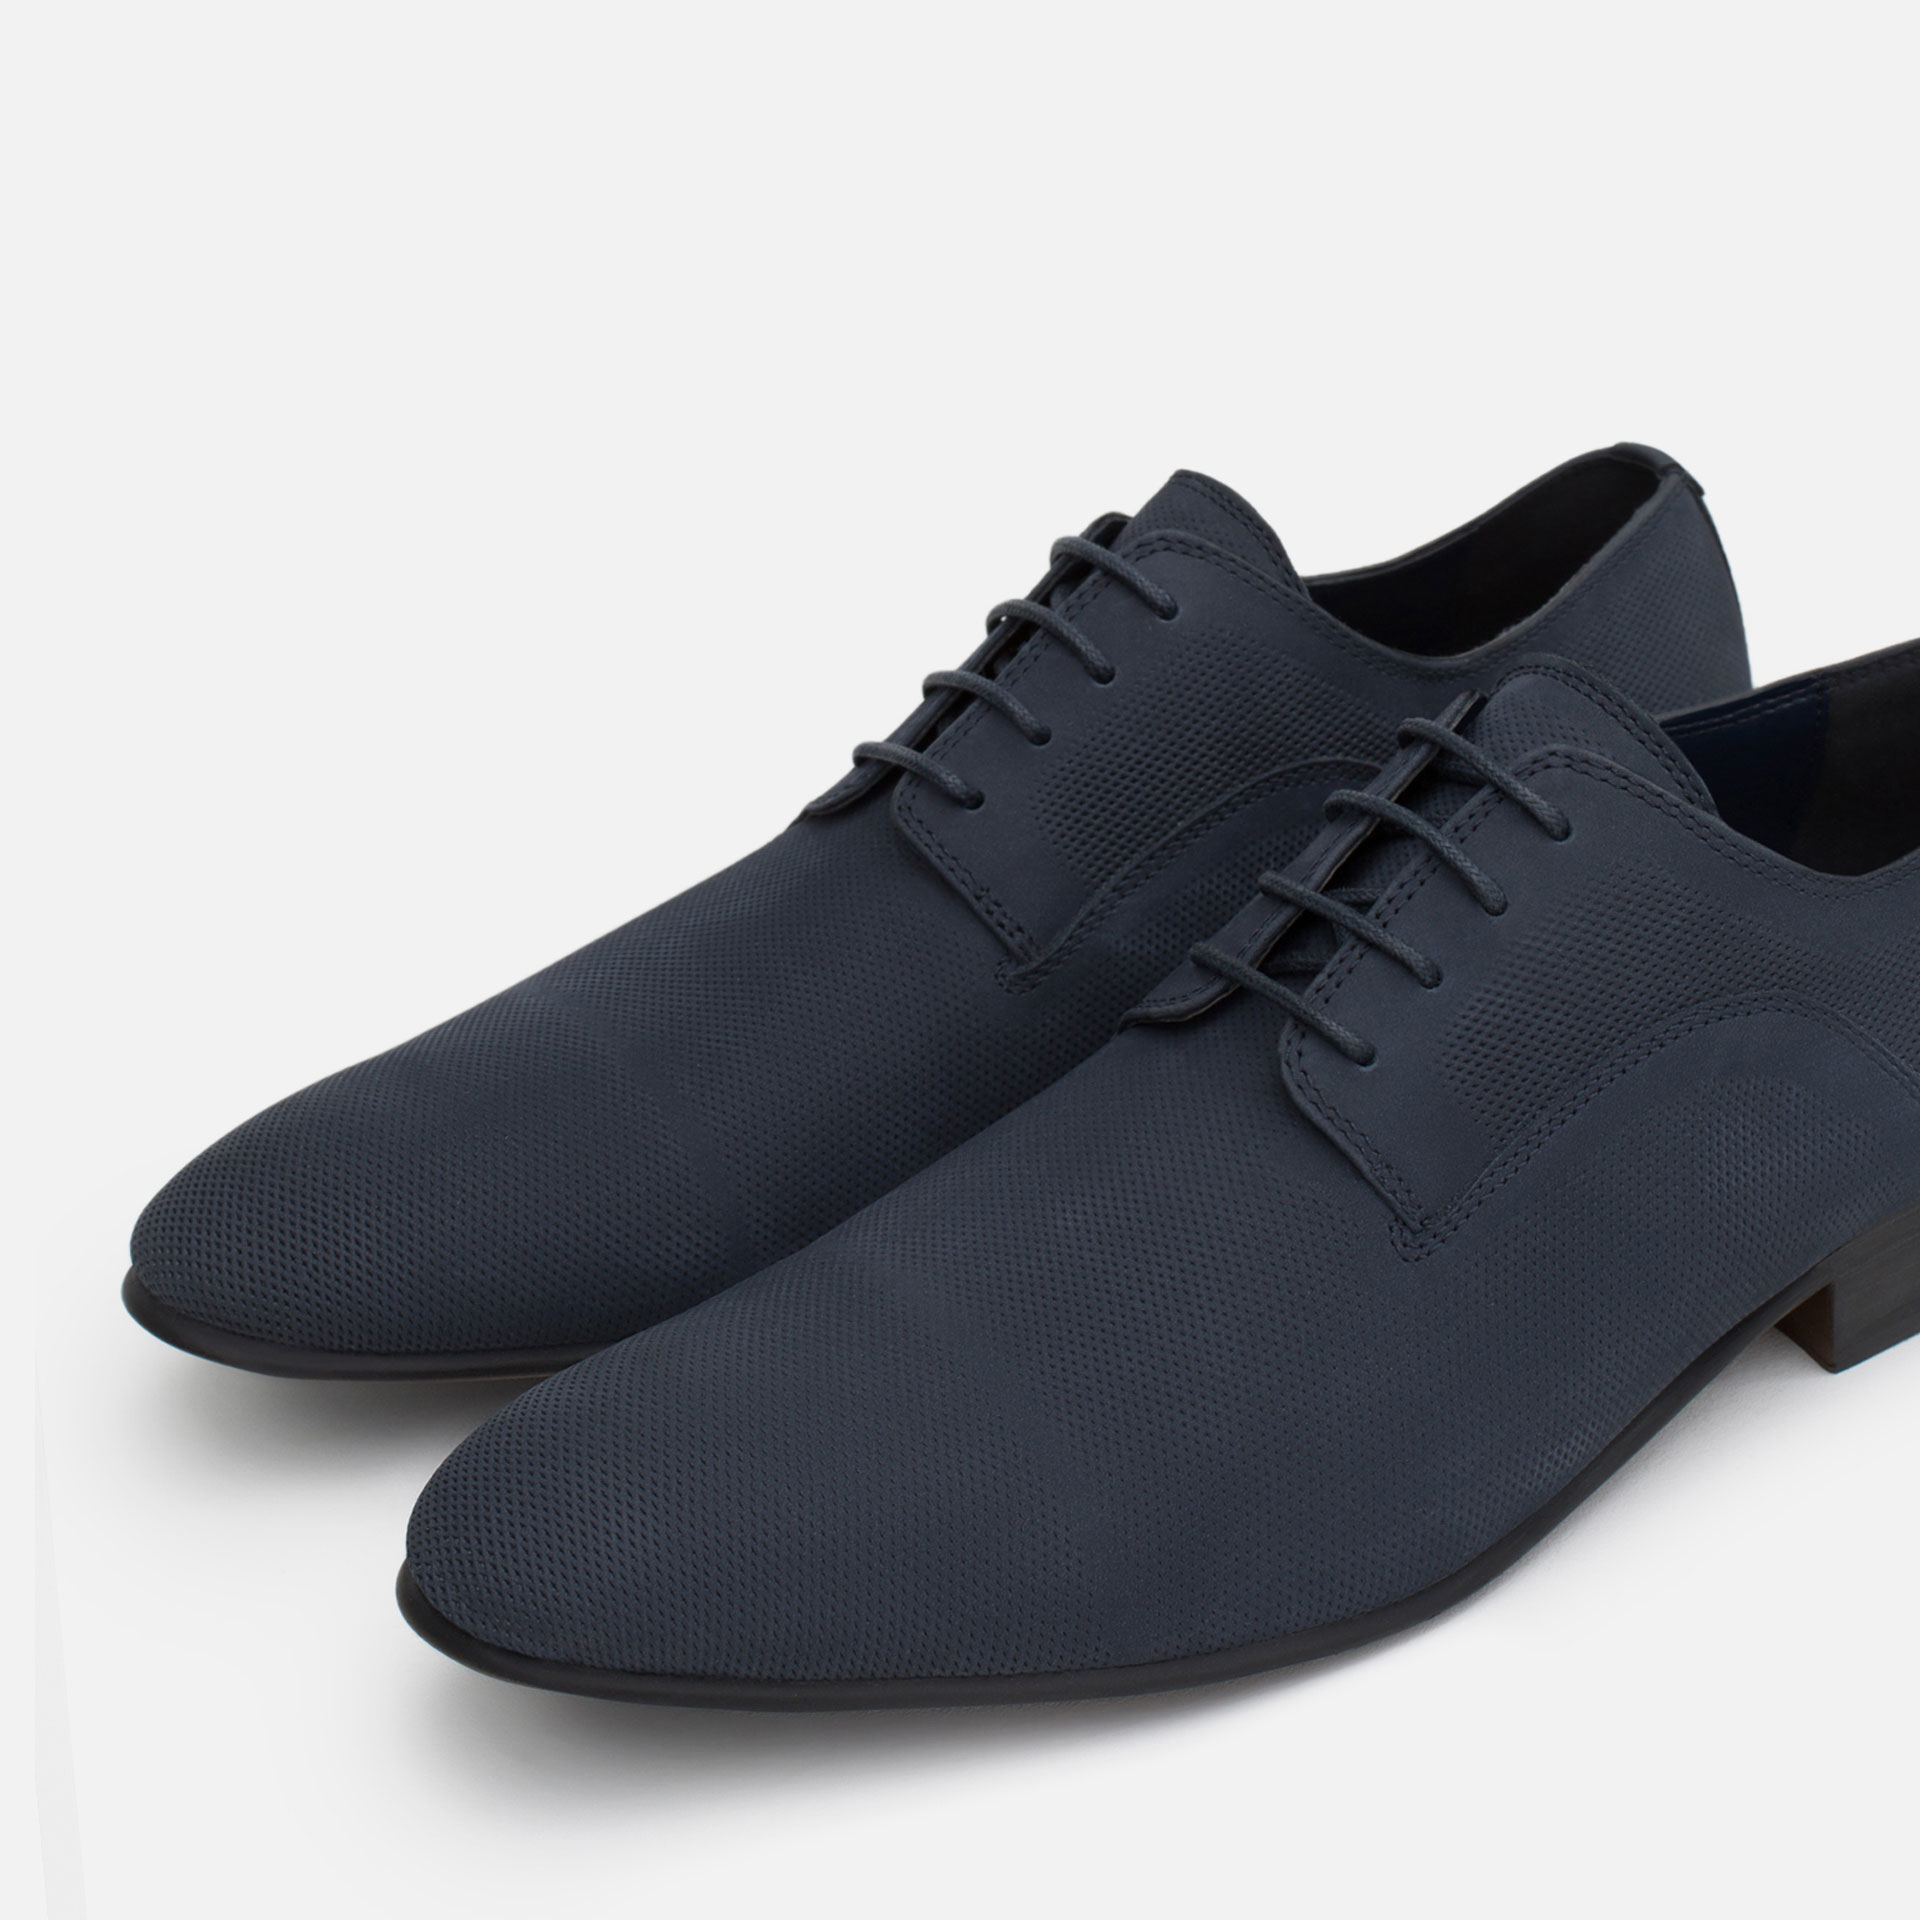 Zara Nubuck Leather Oxford Shoes In Blue For Men | Lyst